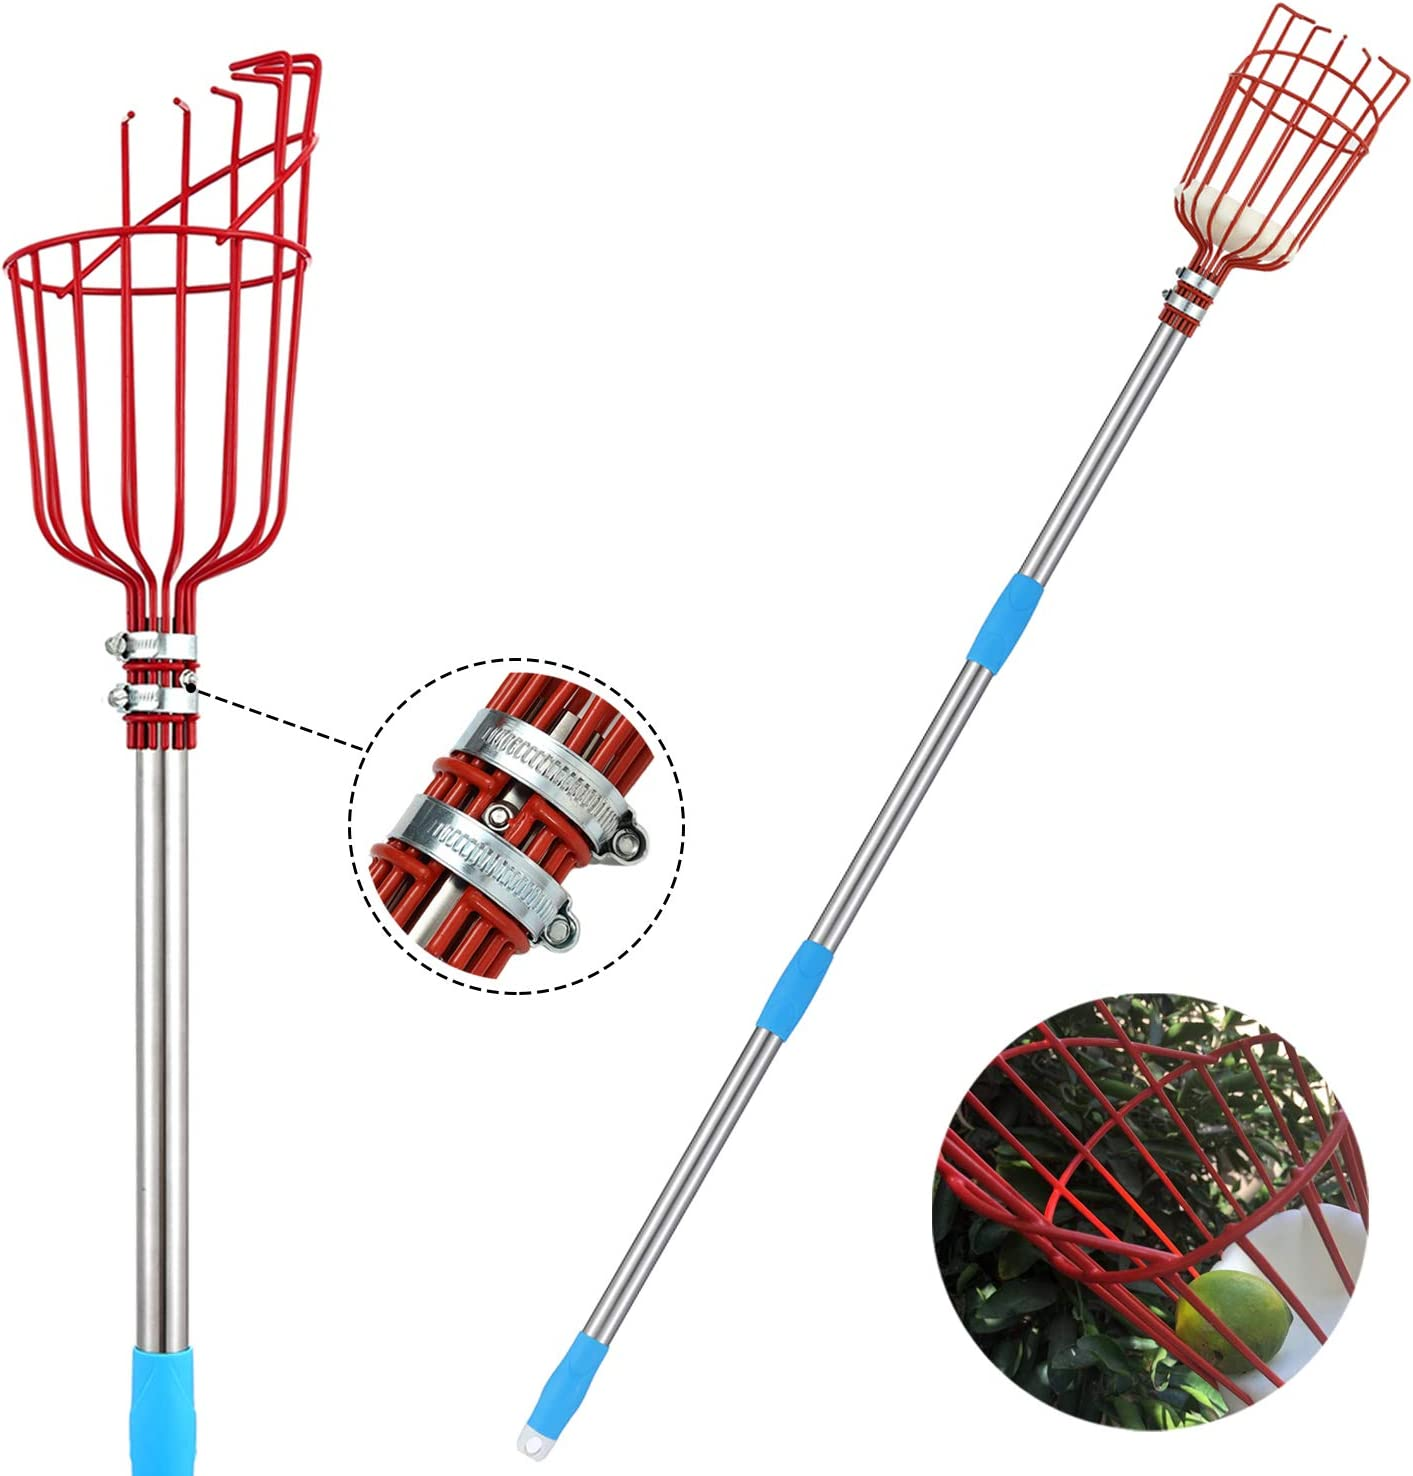 INFLATION Fruit Picker Tool - 8 FT Stainless Steel Splicable Pole with Basket, Lightweight Fruit Picking Equipment for Getting Fruits